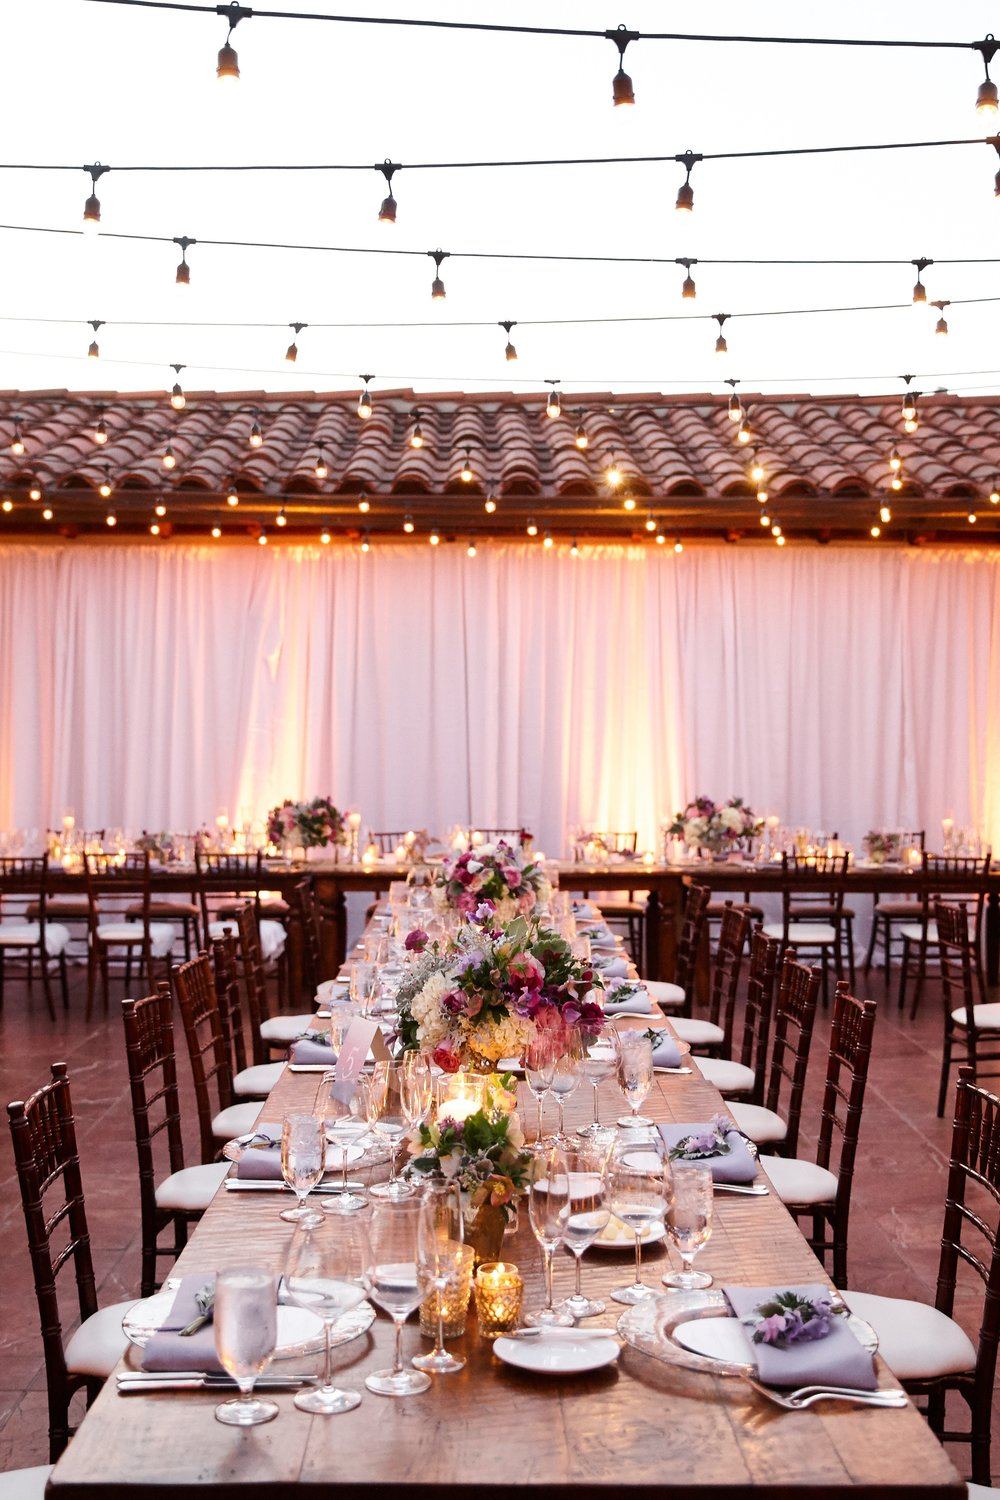 santabarbarawedding.com | SPARK Creative Events | Bacara Resort Rotunda Terrace Lighting